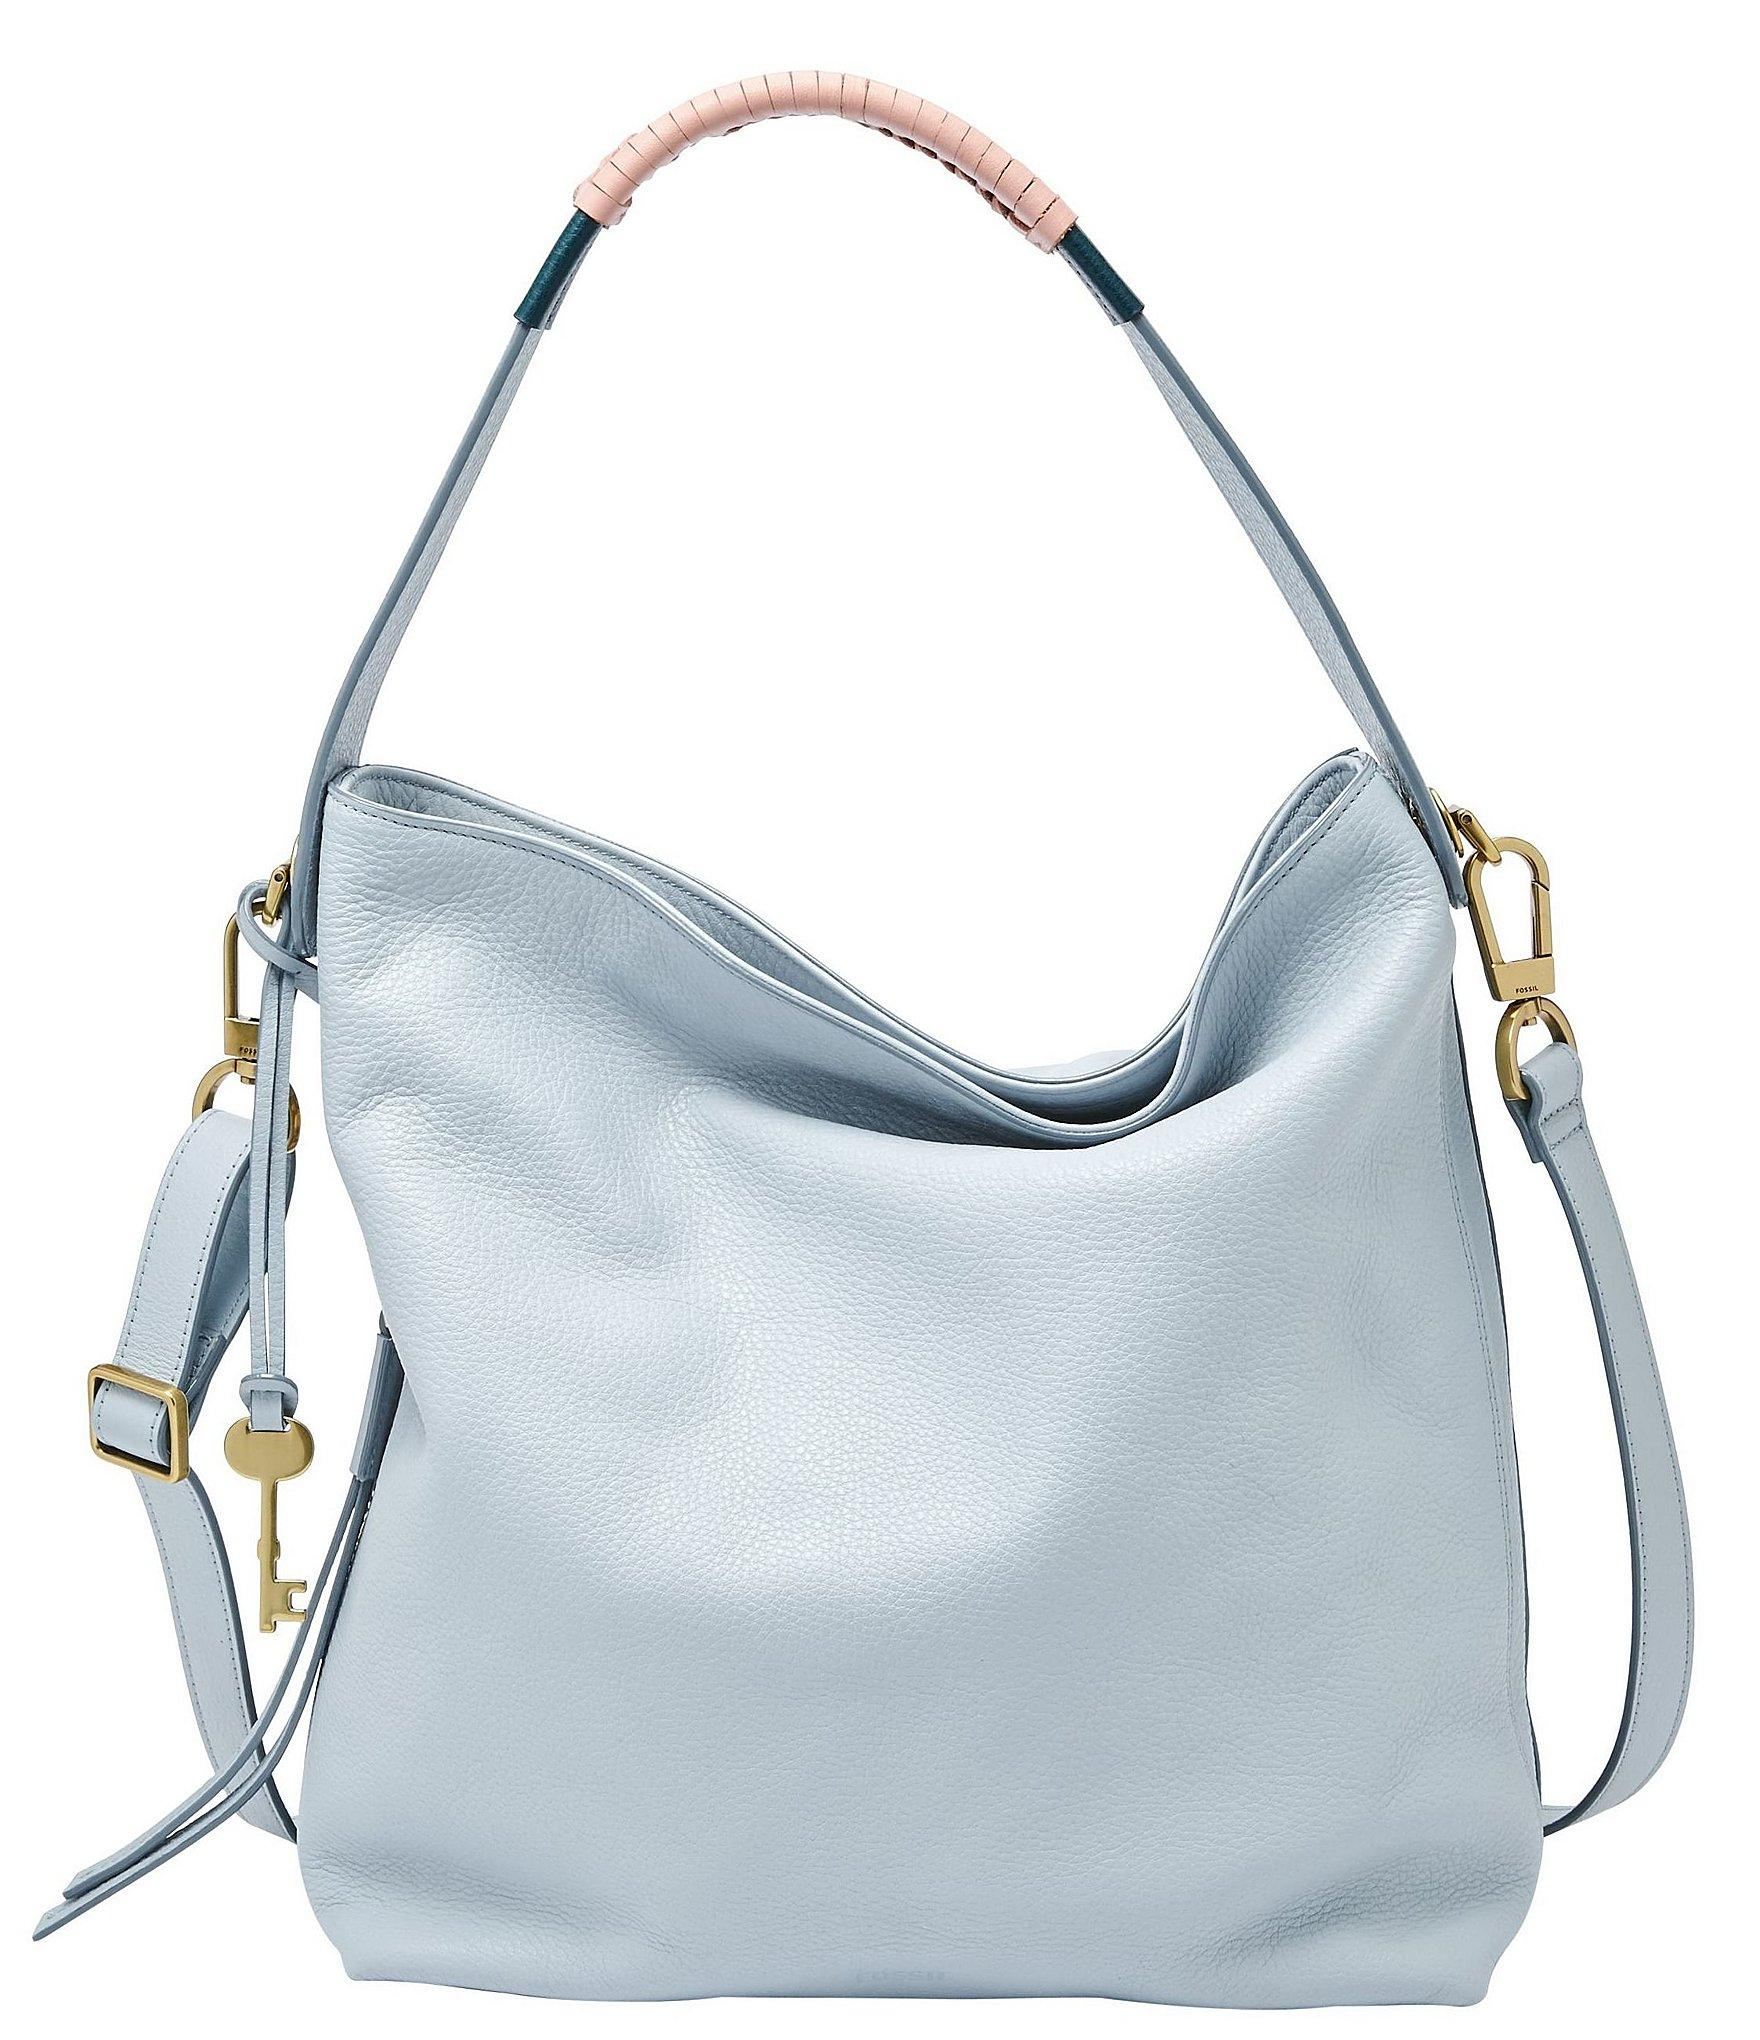 Lyst - Fossil Maya Small Leather Hobo Bag in Blue 8000a378151c0